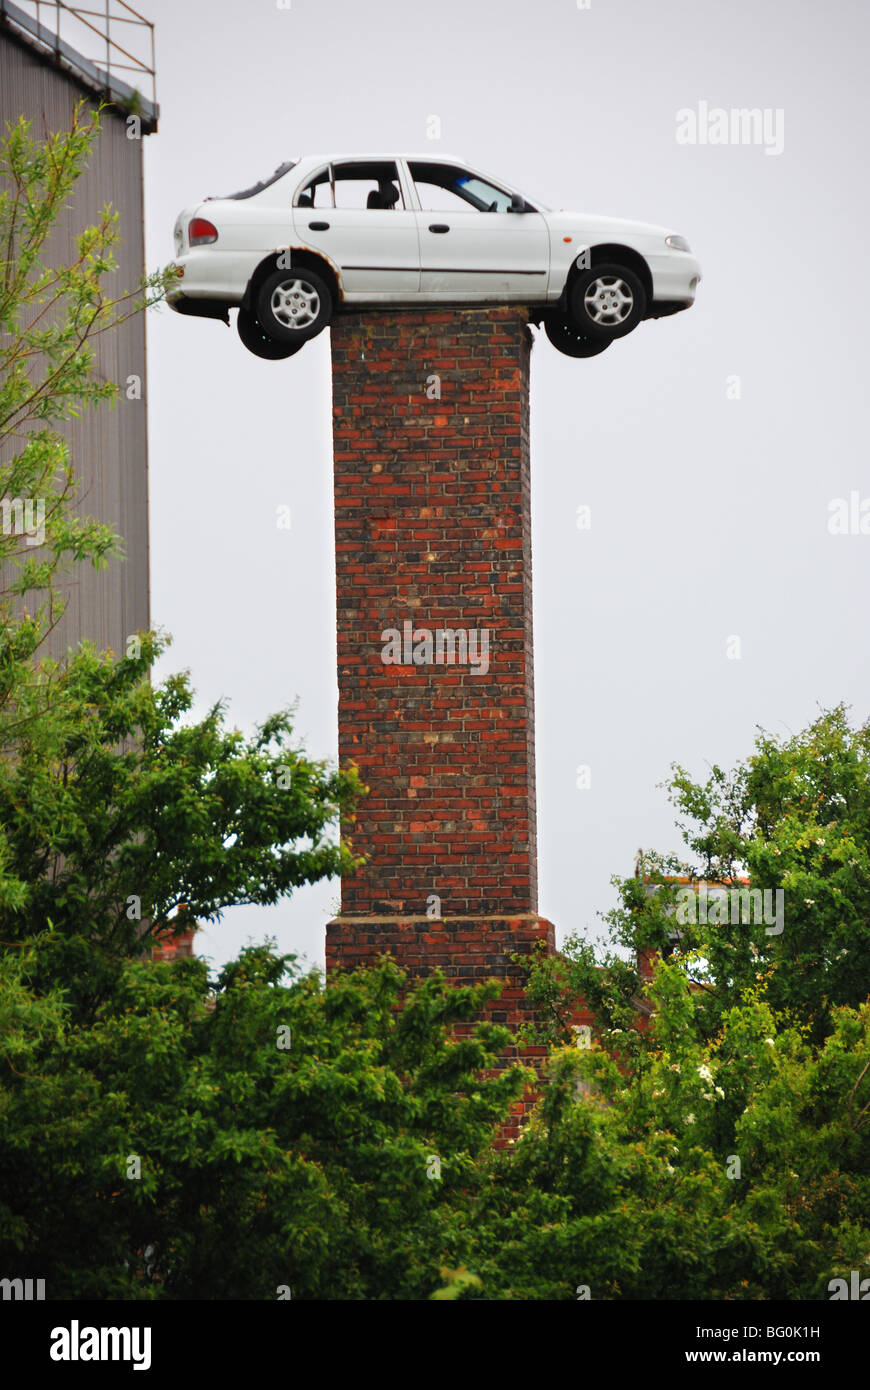 Car on top of chimney - Stock Image